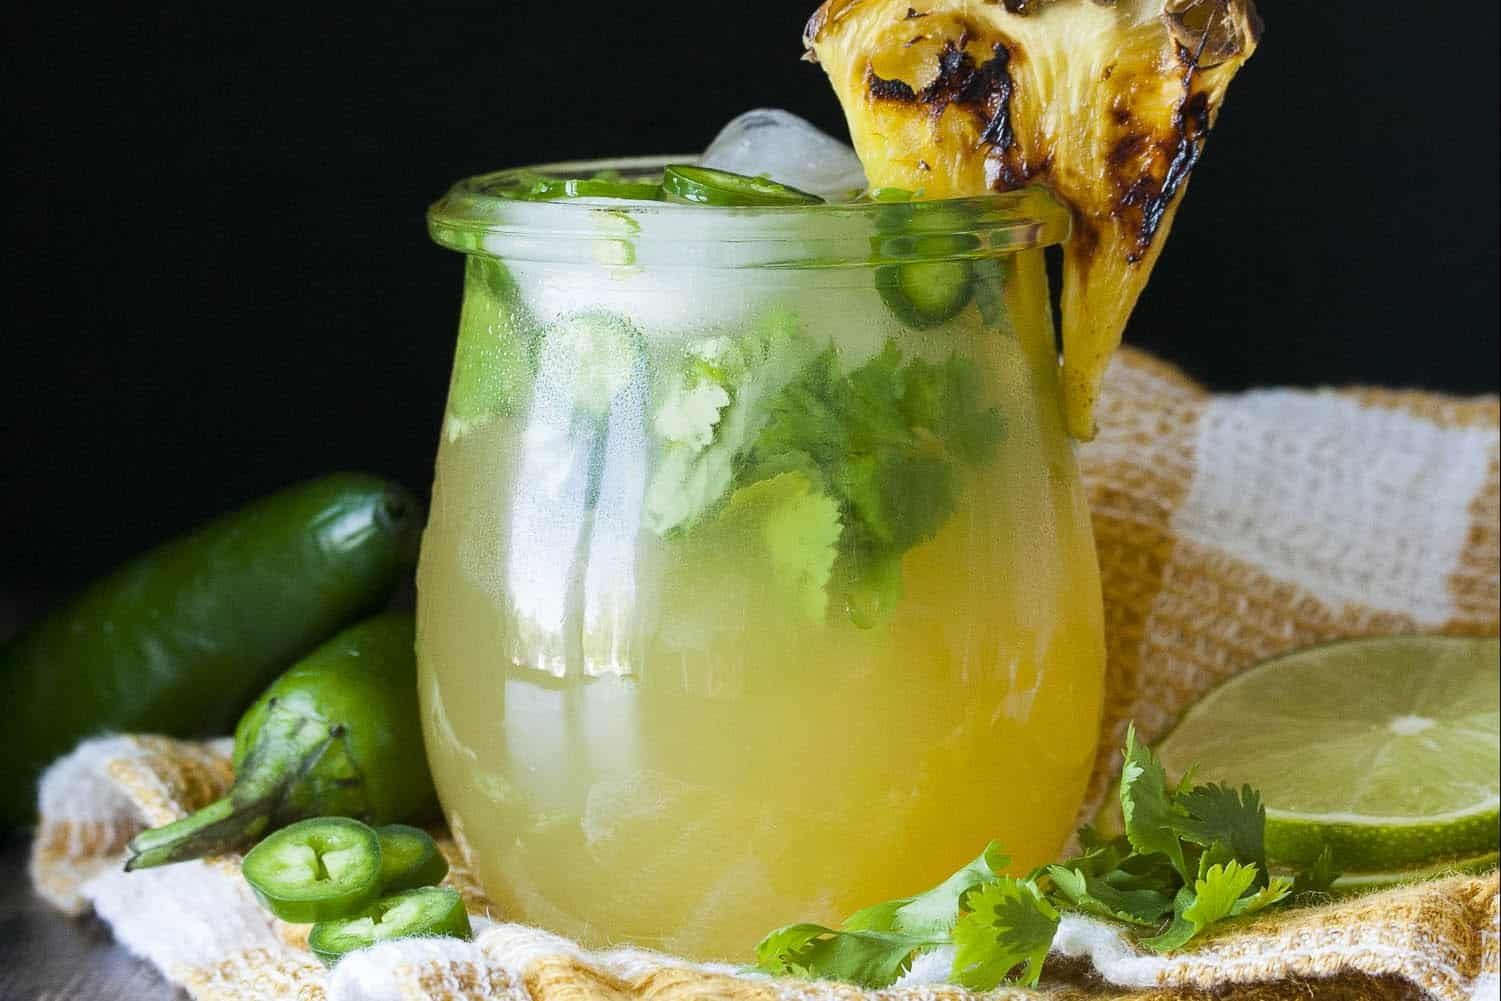 Refreshing Margarita Recipes to Cool You Down This Summer: Grilled Pineapple Jalapeño Margarita